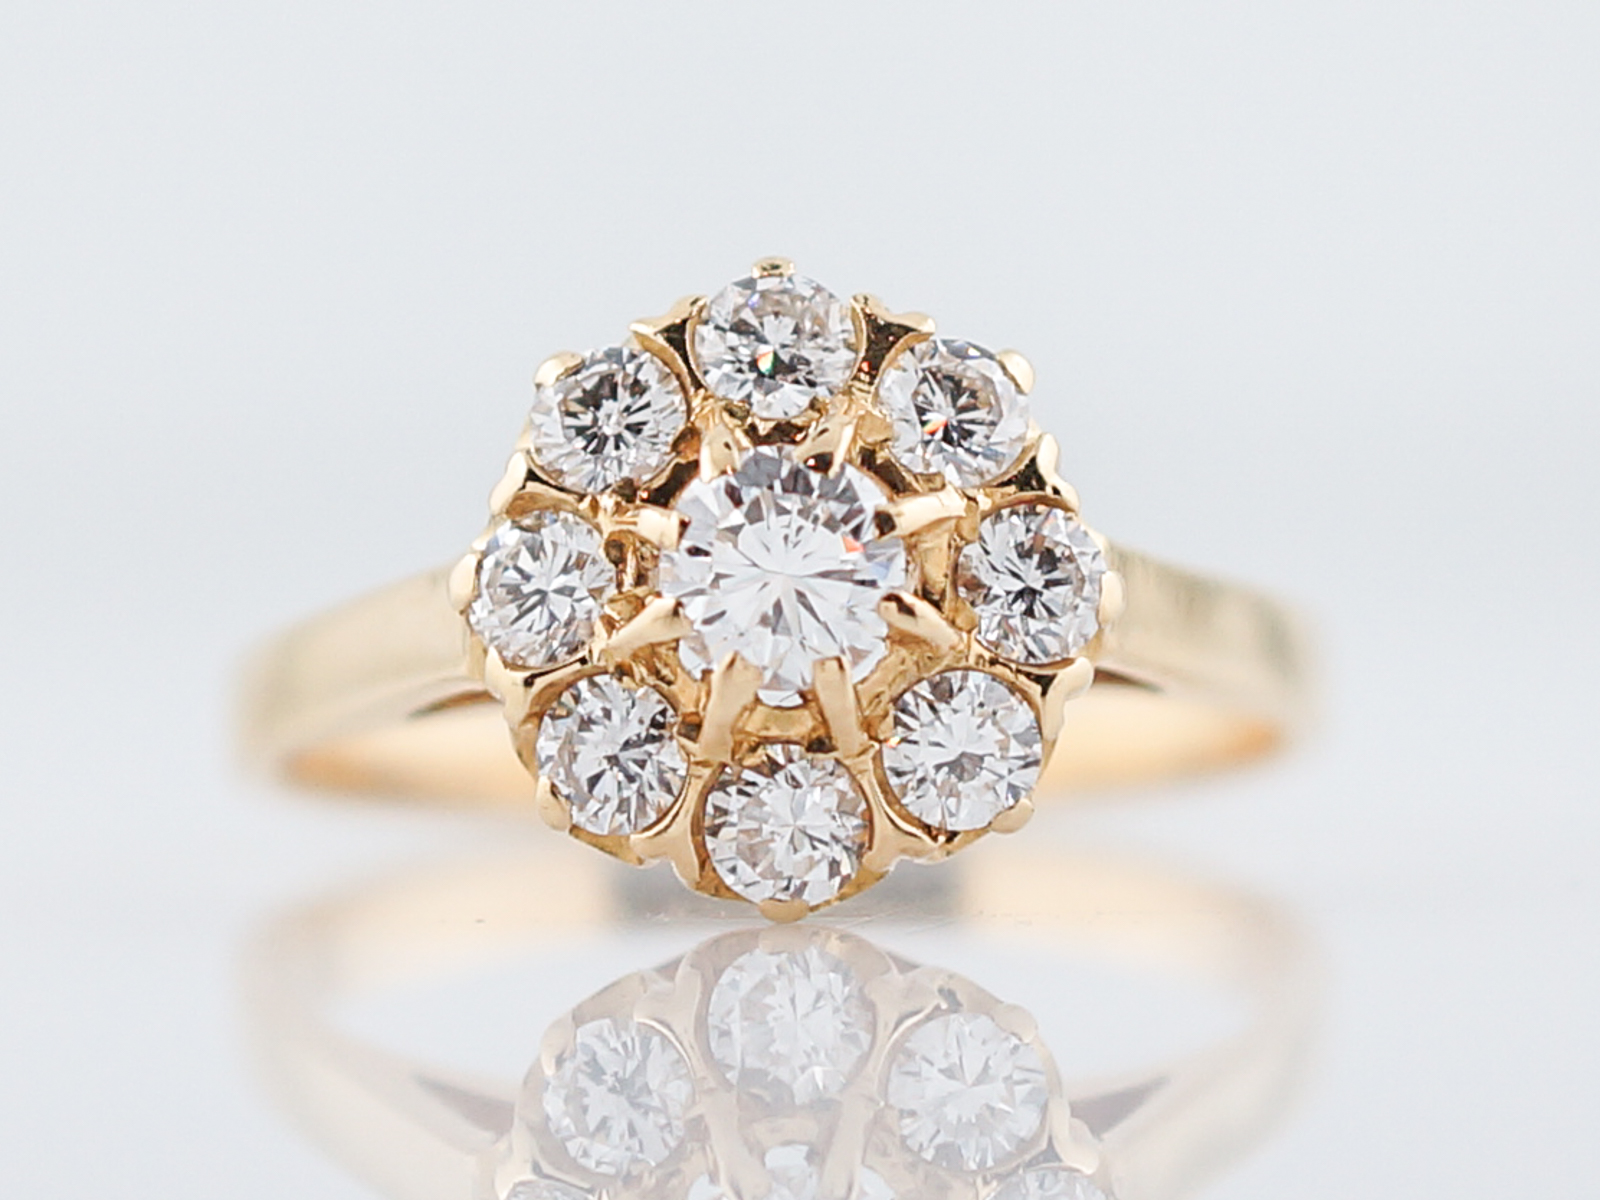 jewellery ring oval engagement il product hand rings morganite home right rose gold fullxfull